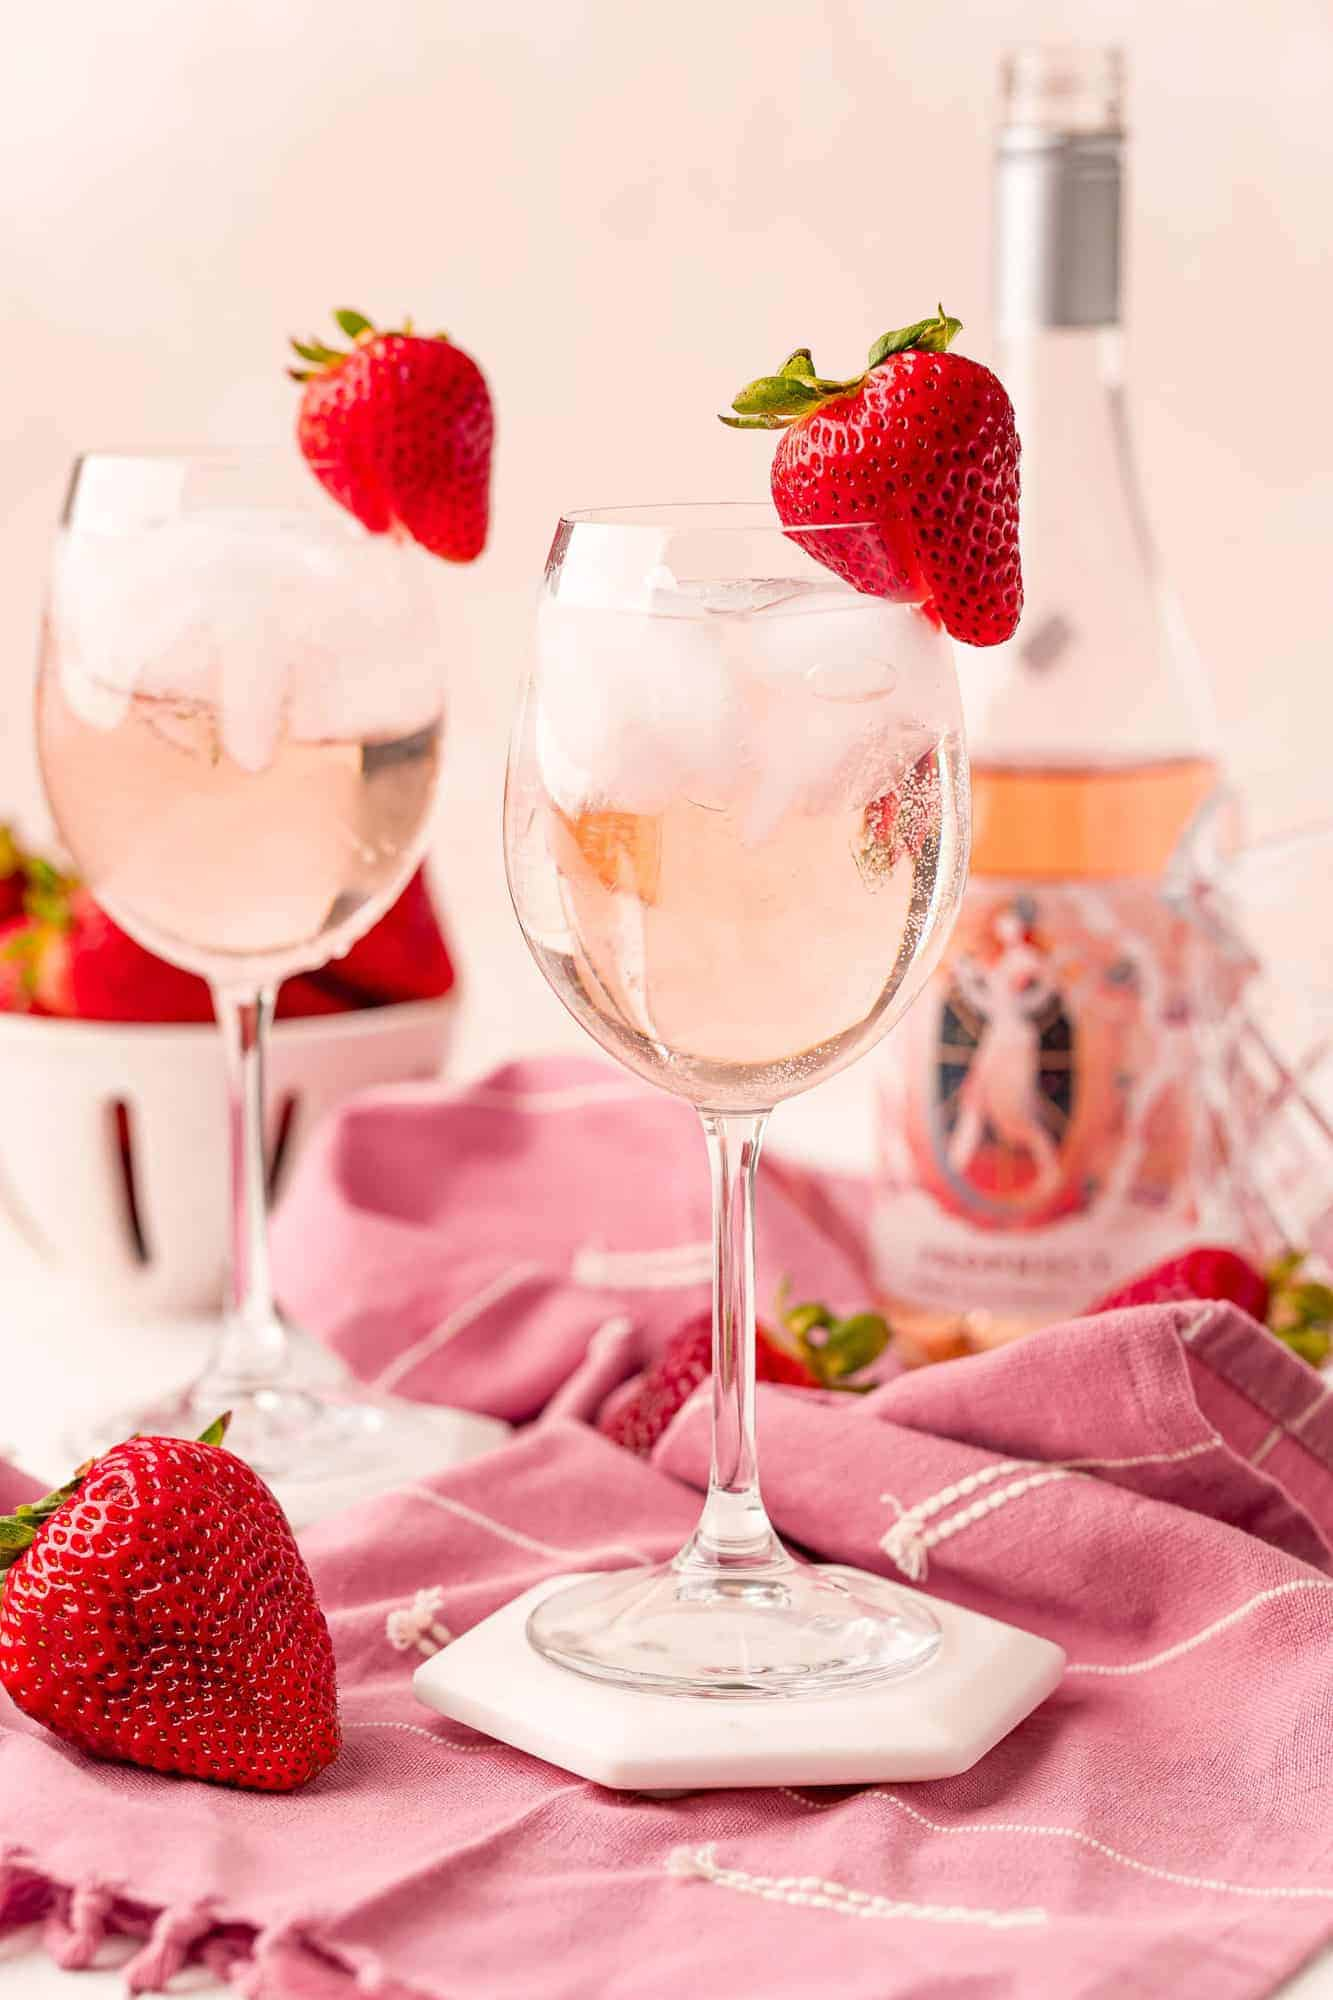 Two stemmed glasses with iced rosé spritzers, garnished with strawberries.